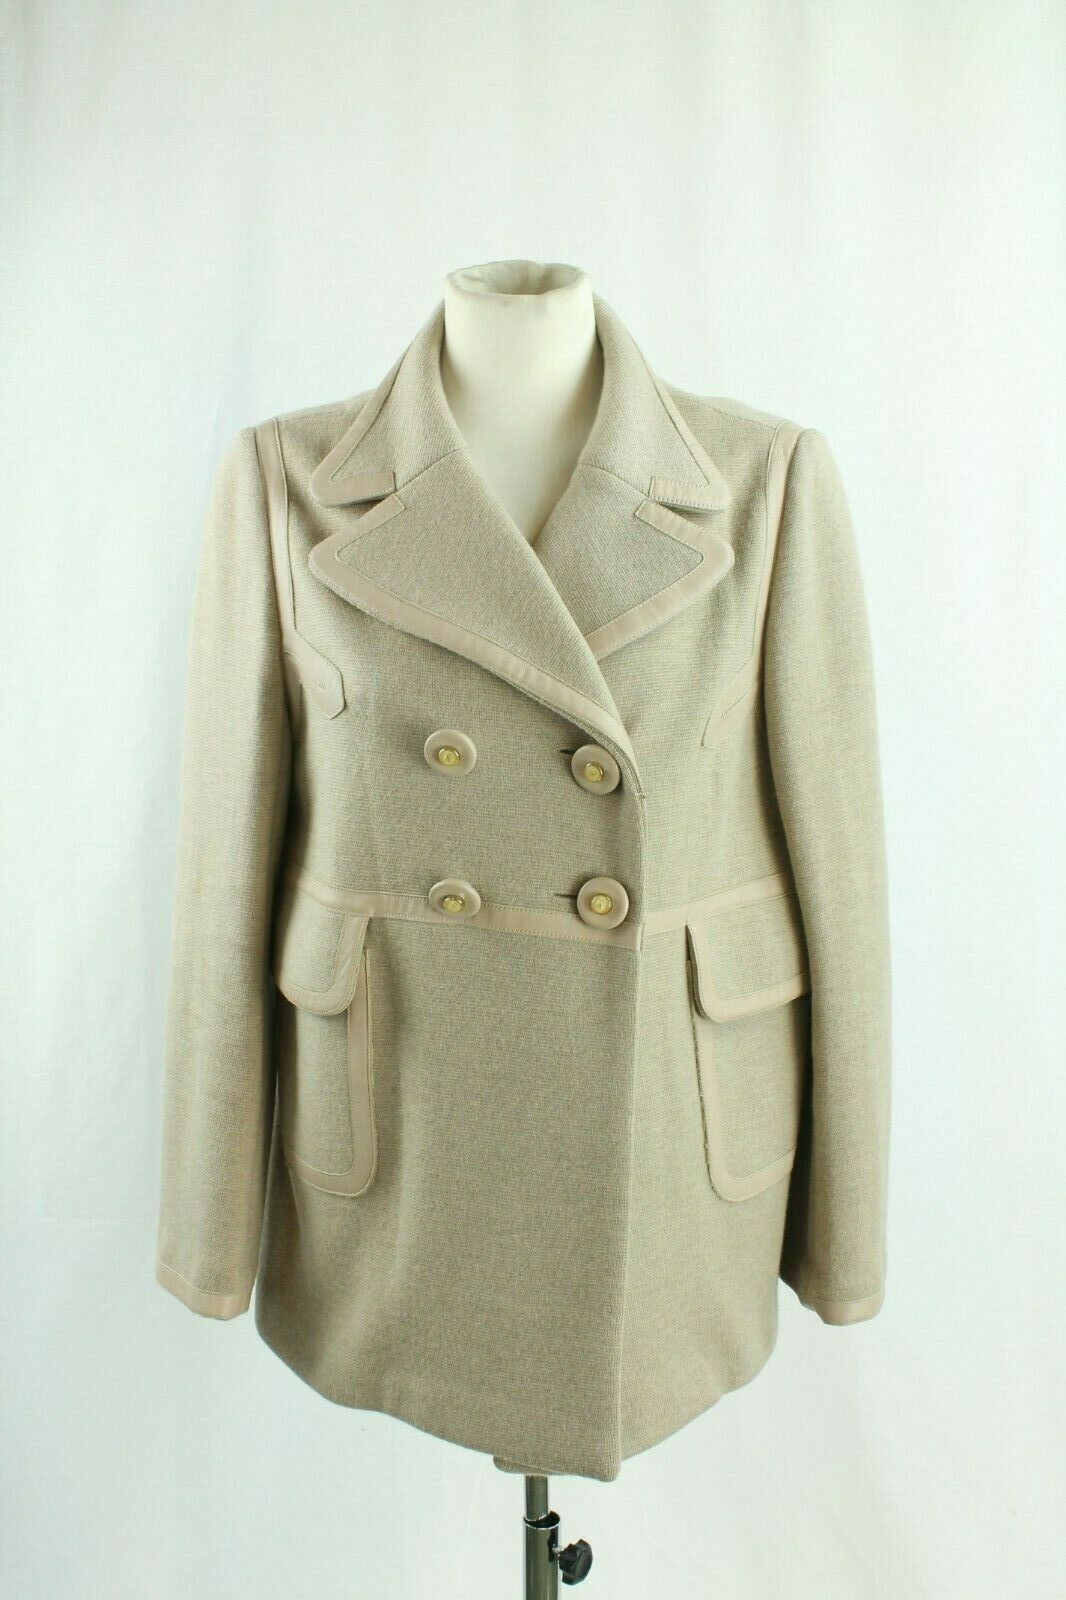 Anya Hindmarch Knitted Beige Peacoat, Size Large.